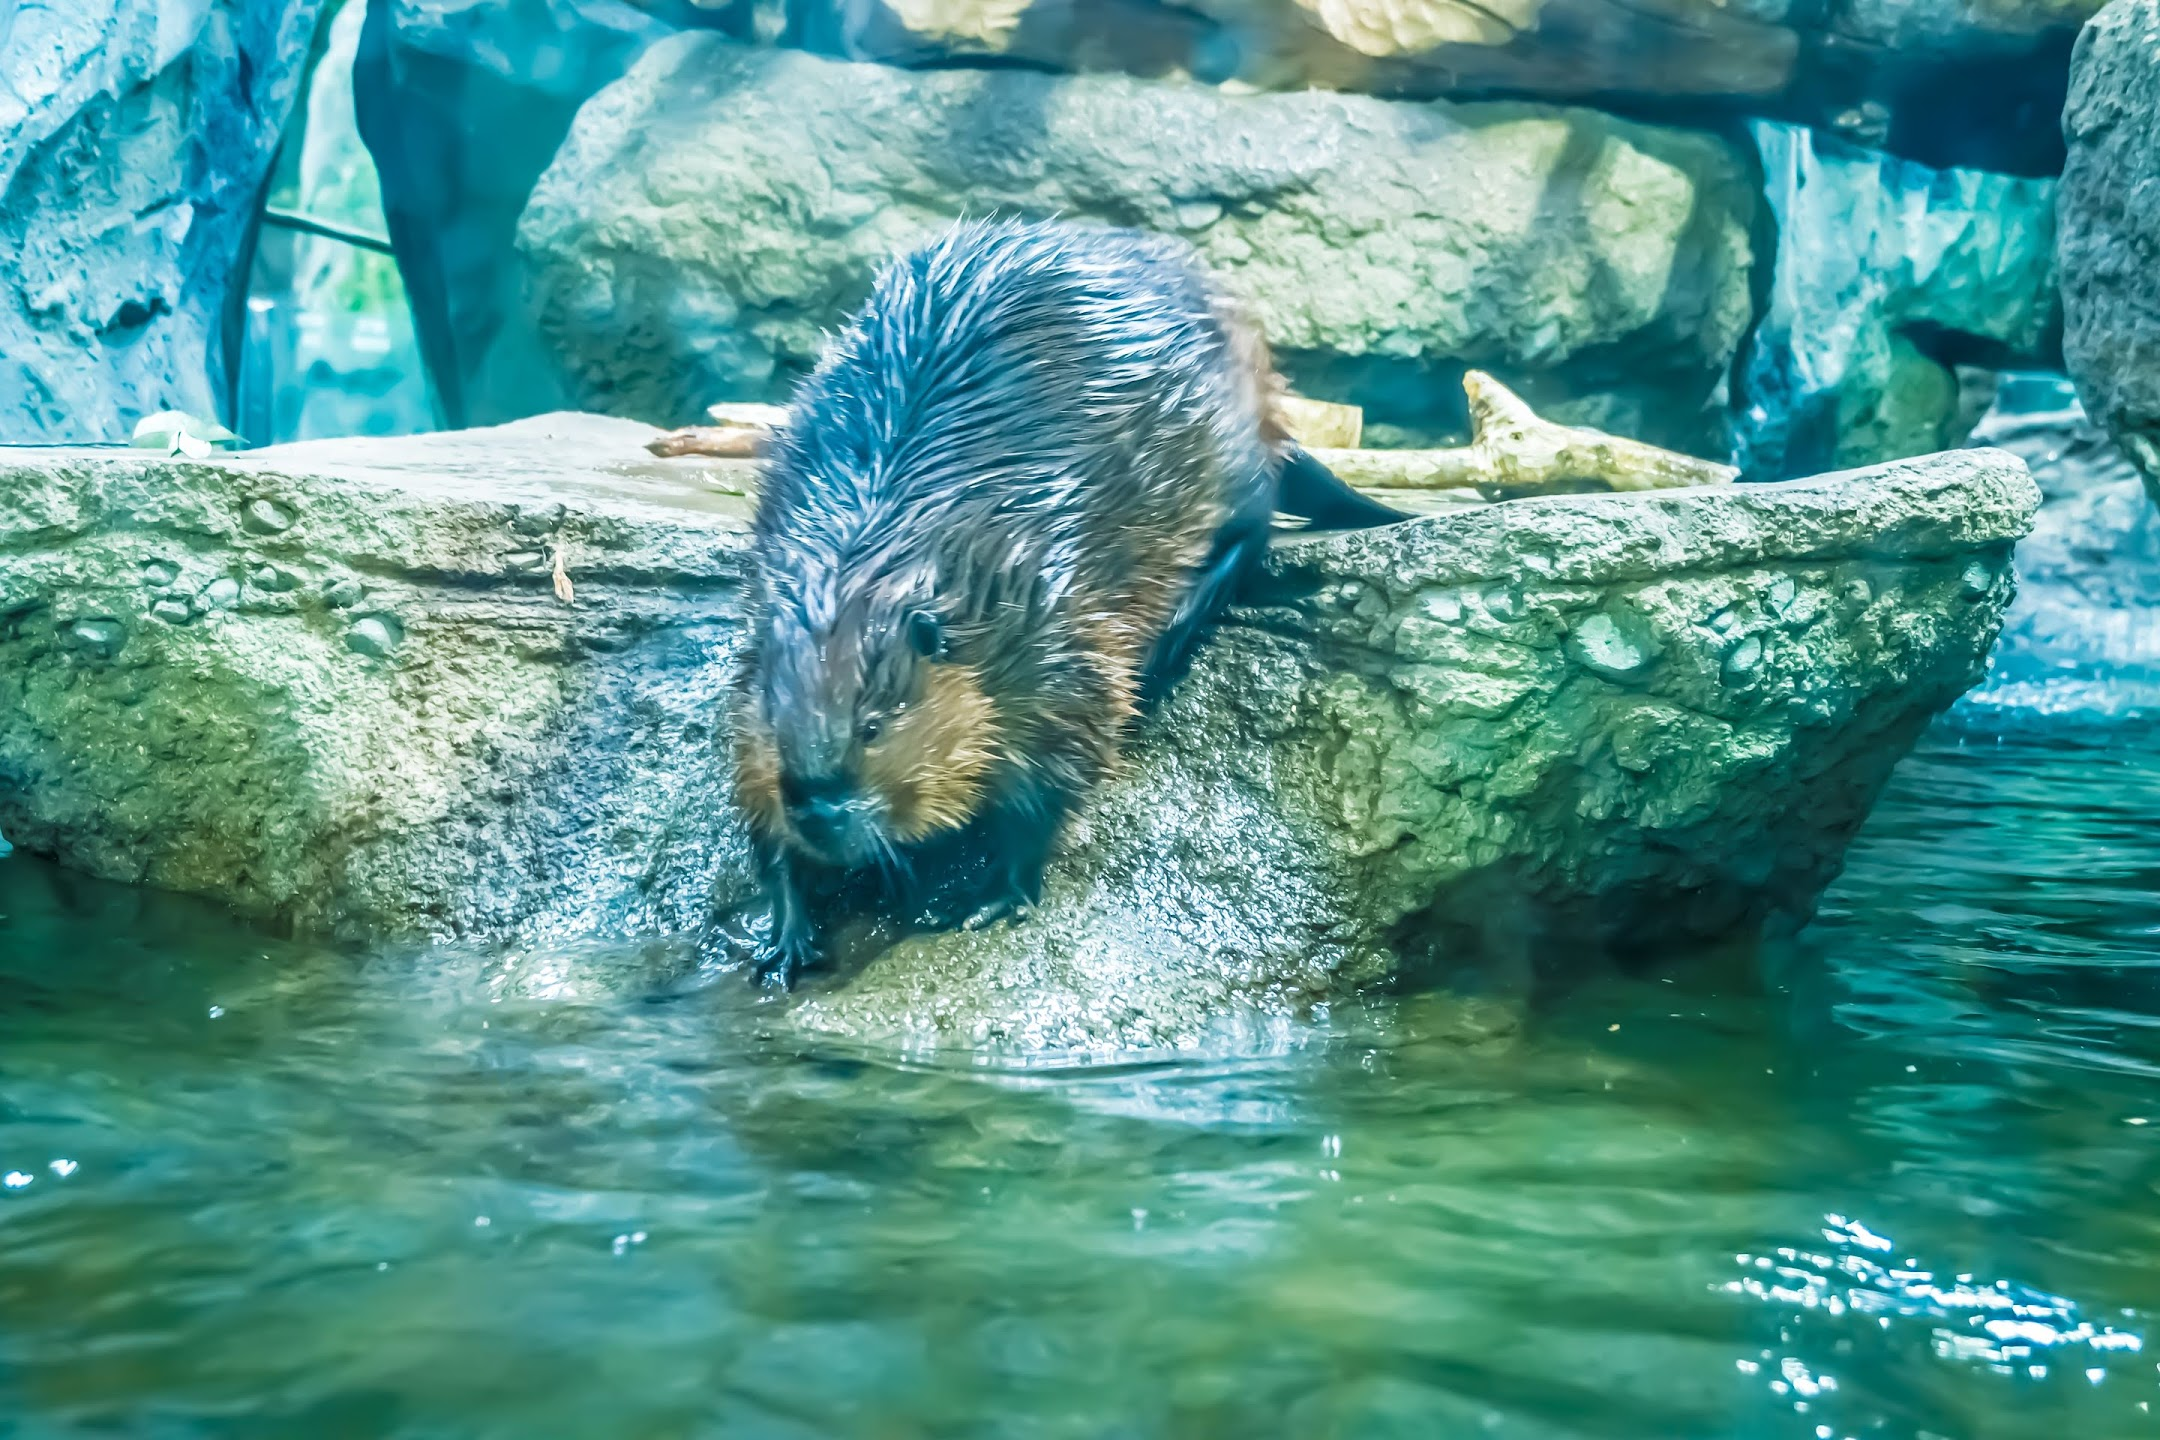 Kobe Animal Kingdom beaver1